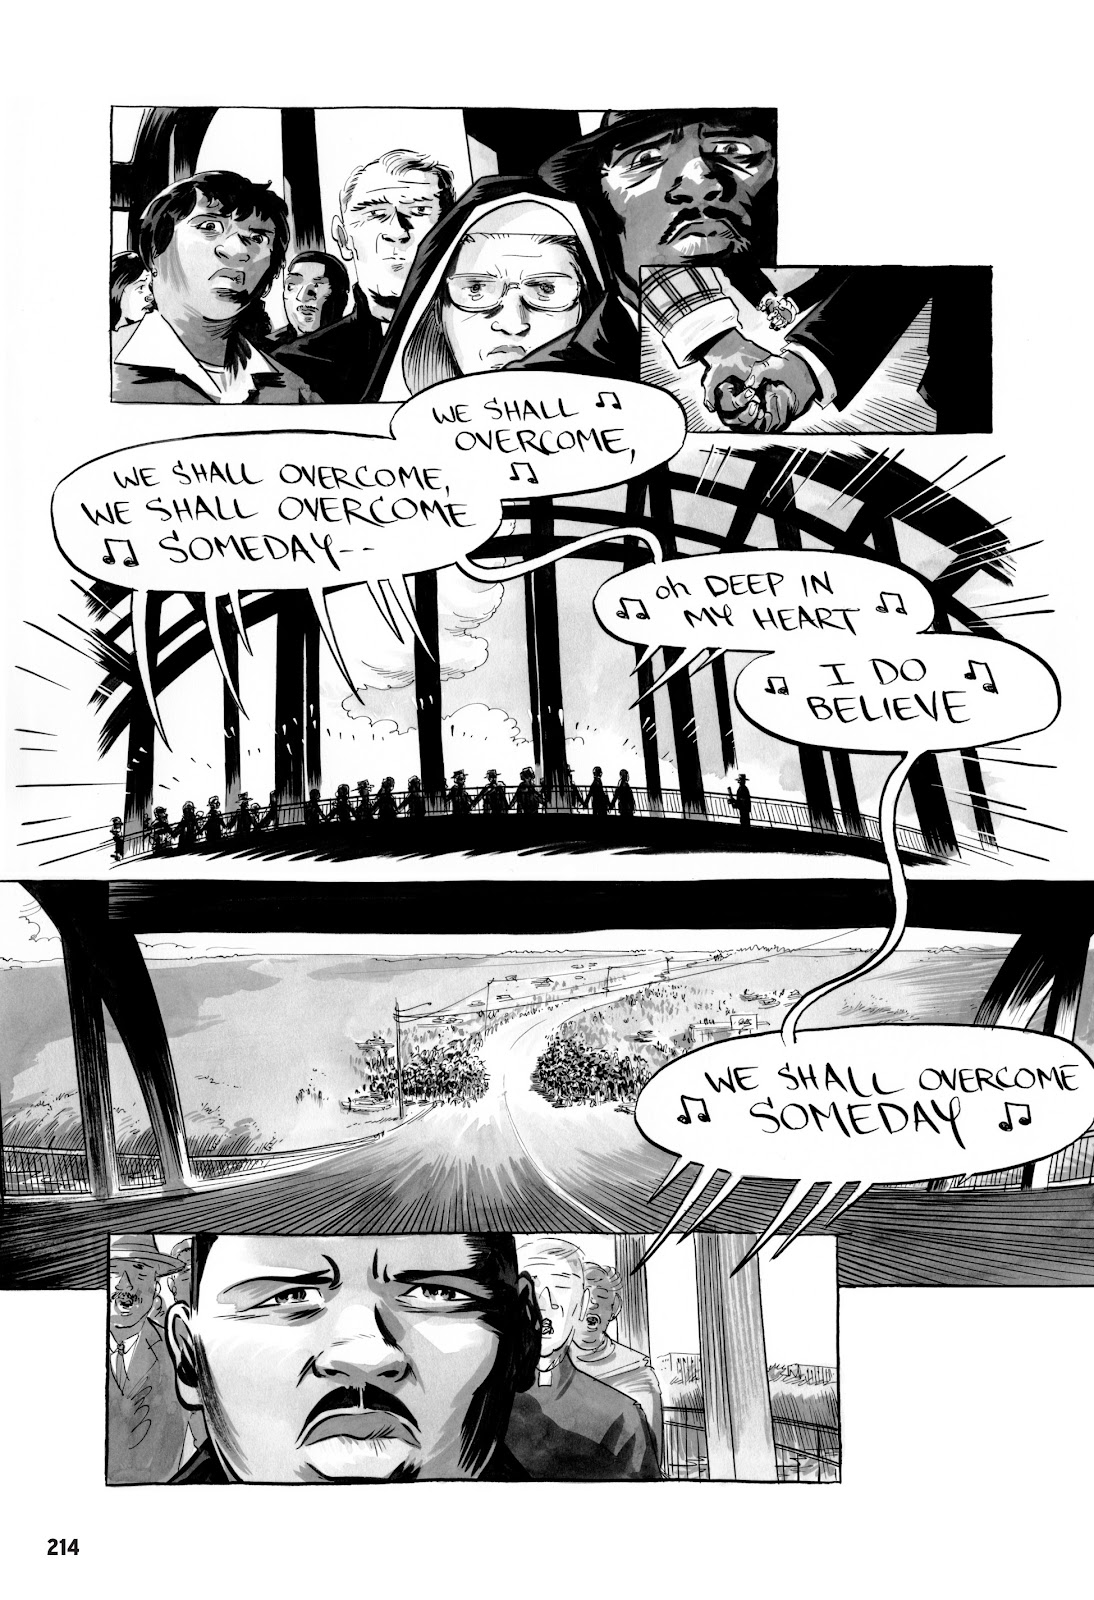 March 3 Page 208